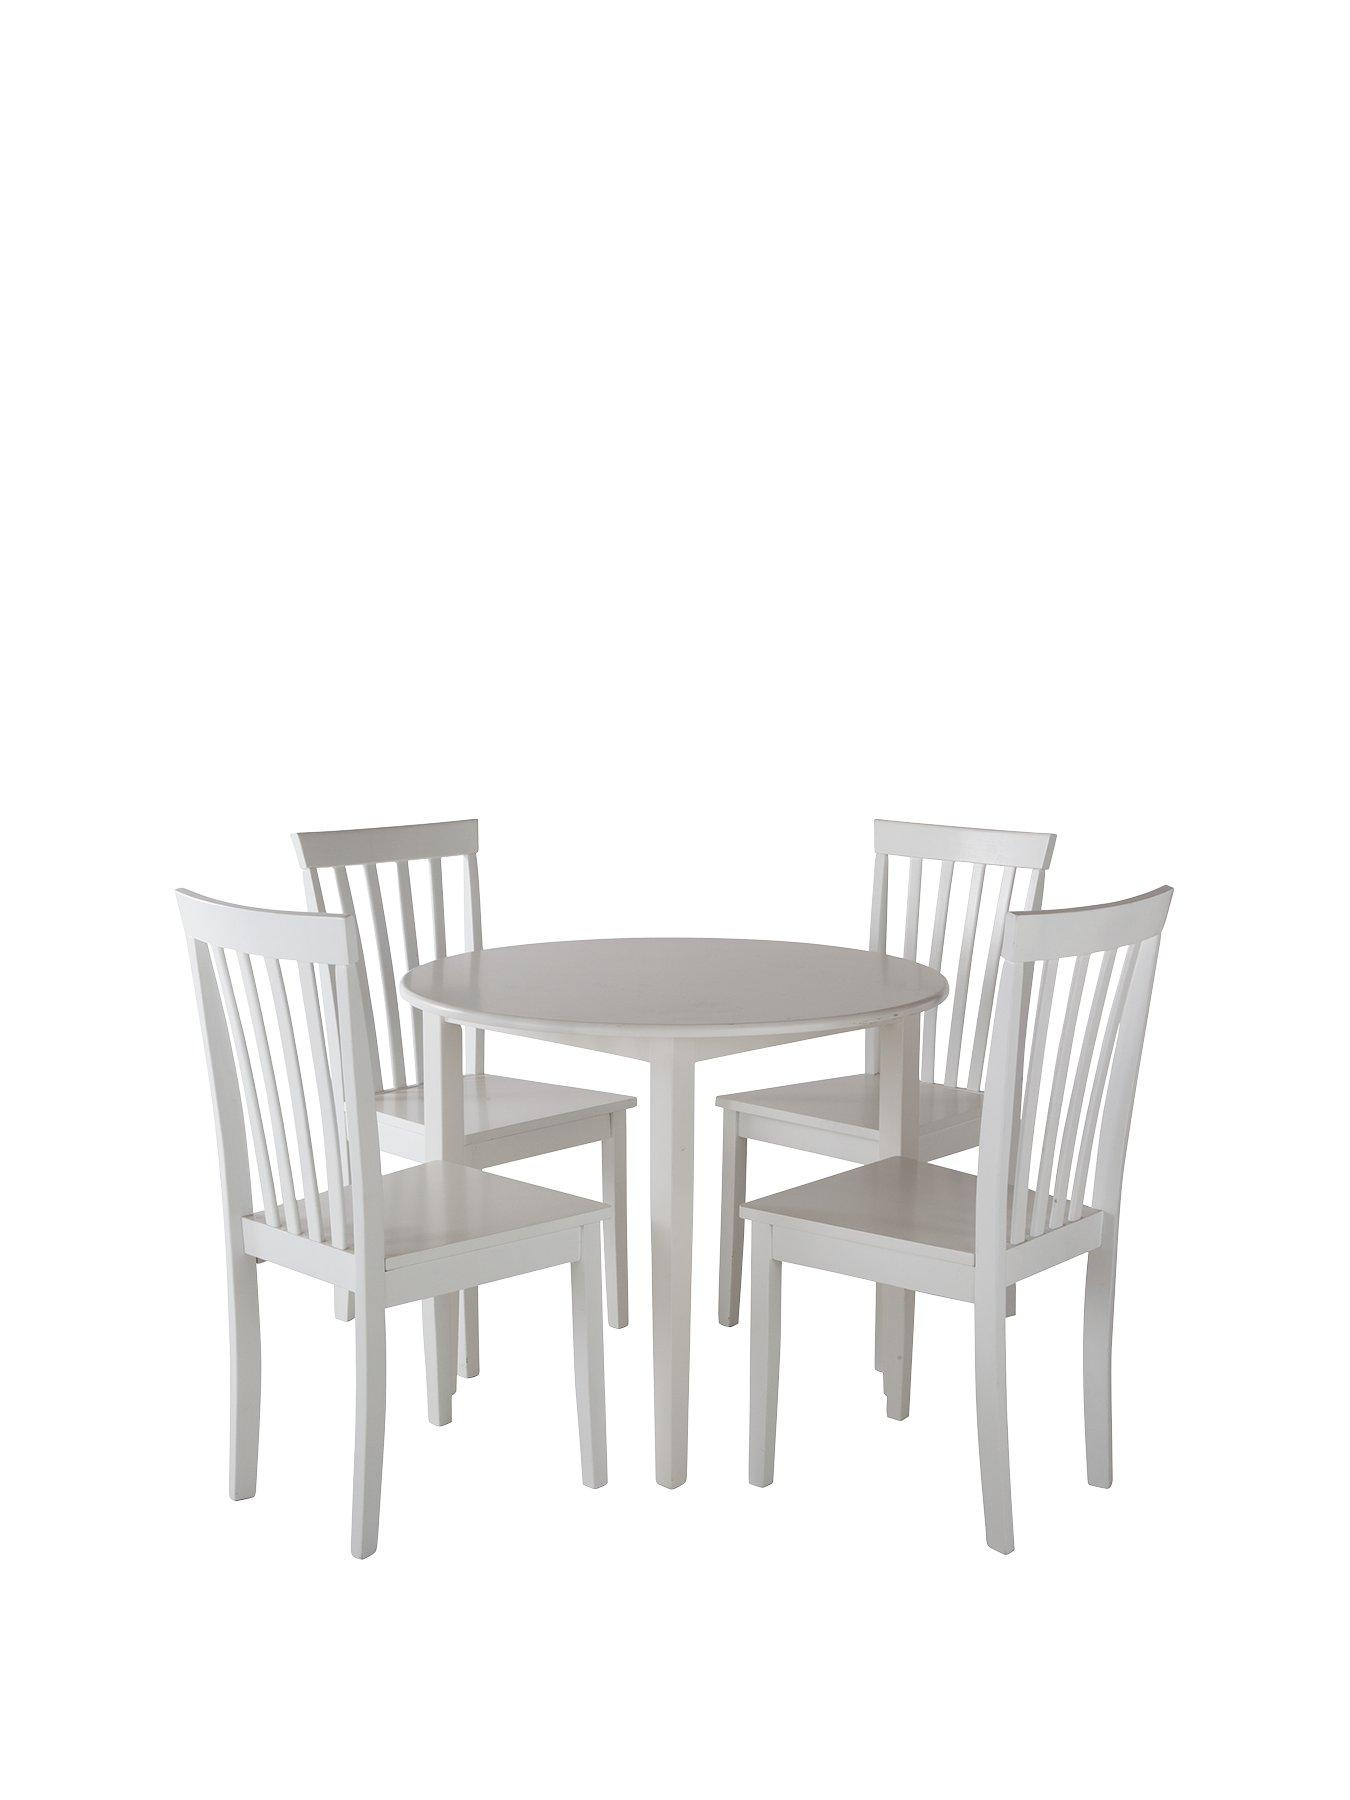 white table chairs high tables and dining sets 6 very co uk sophia 90 cm round 4